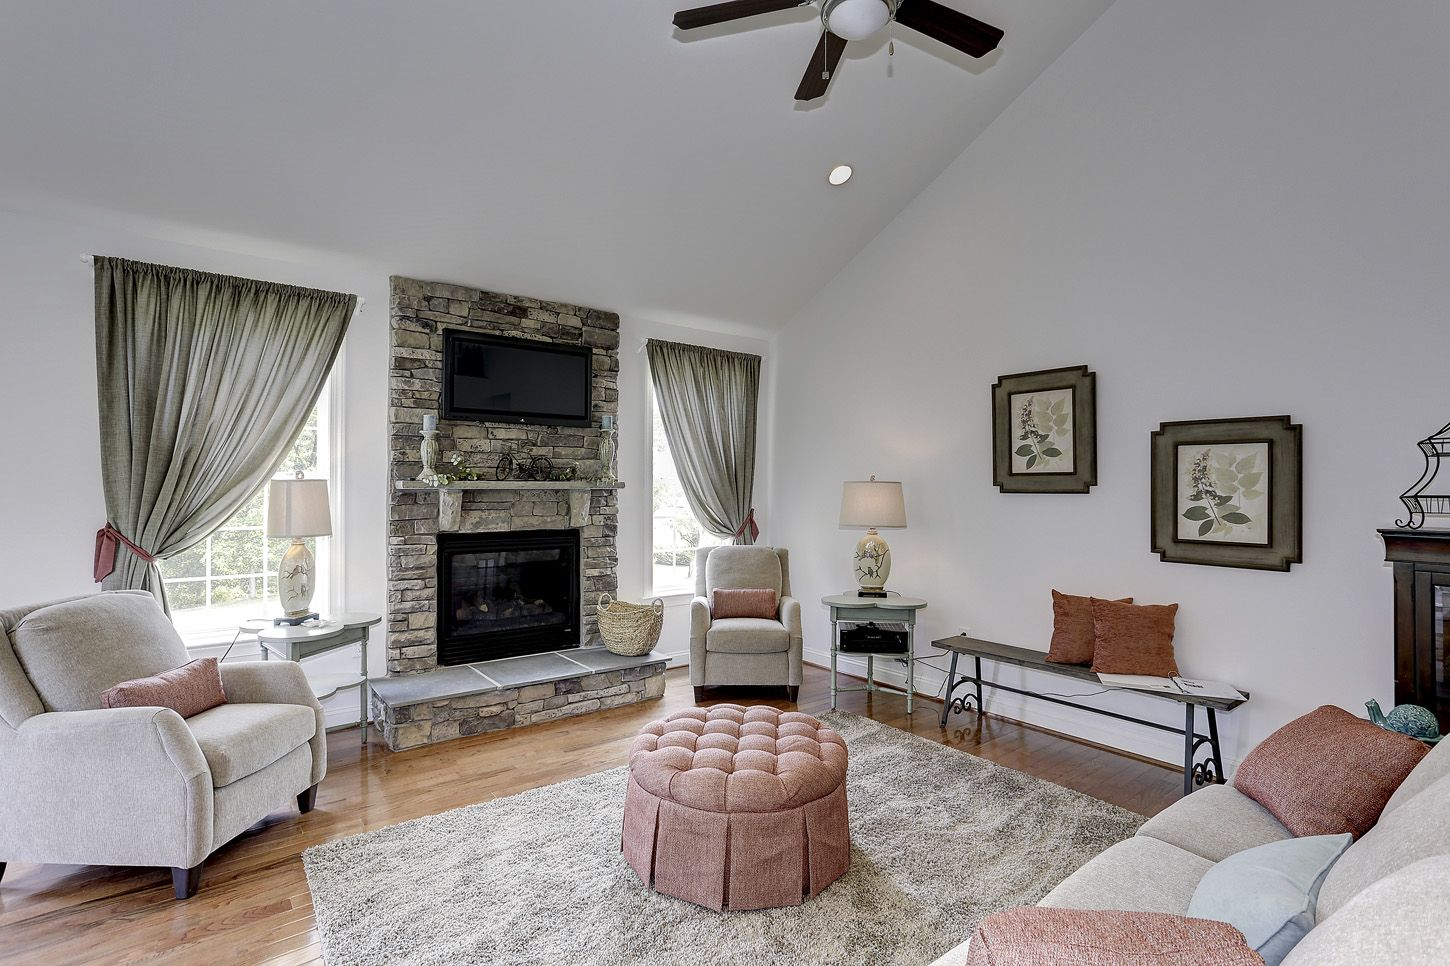 Model Home Curtains cute cozy sitting area with stone fireplace, high vaulted ceiling